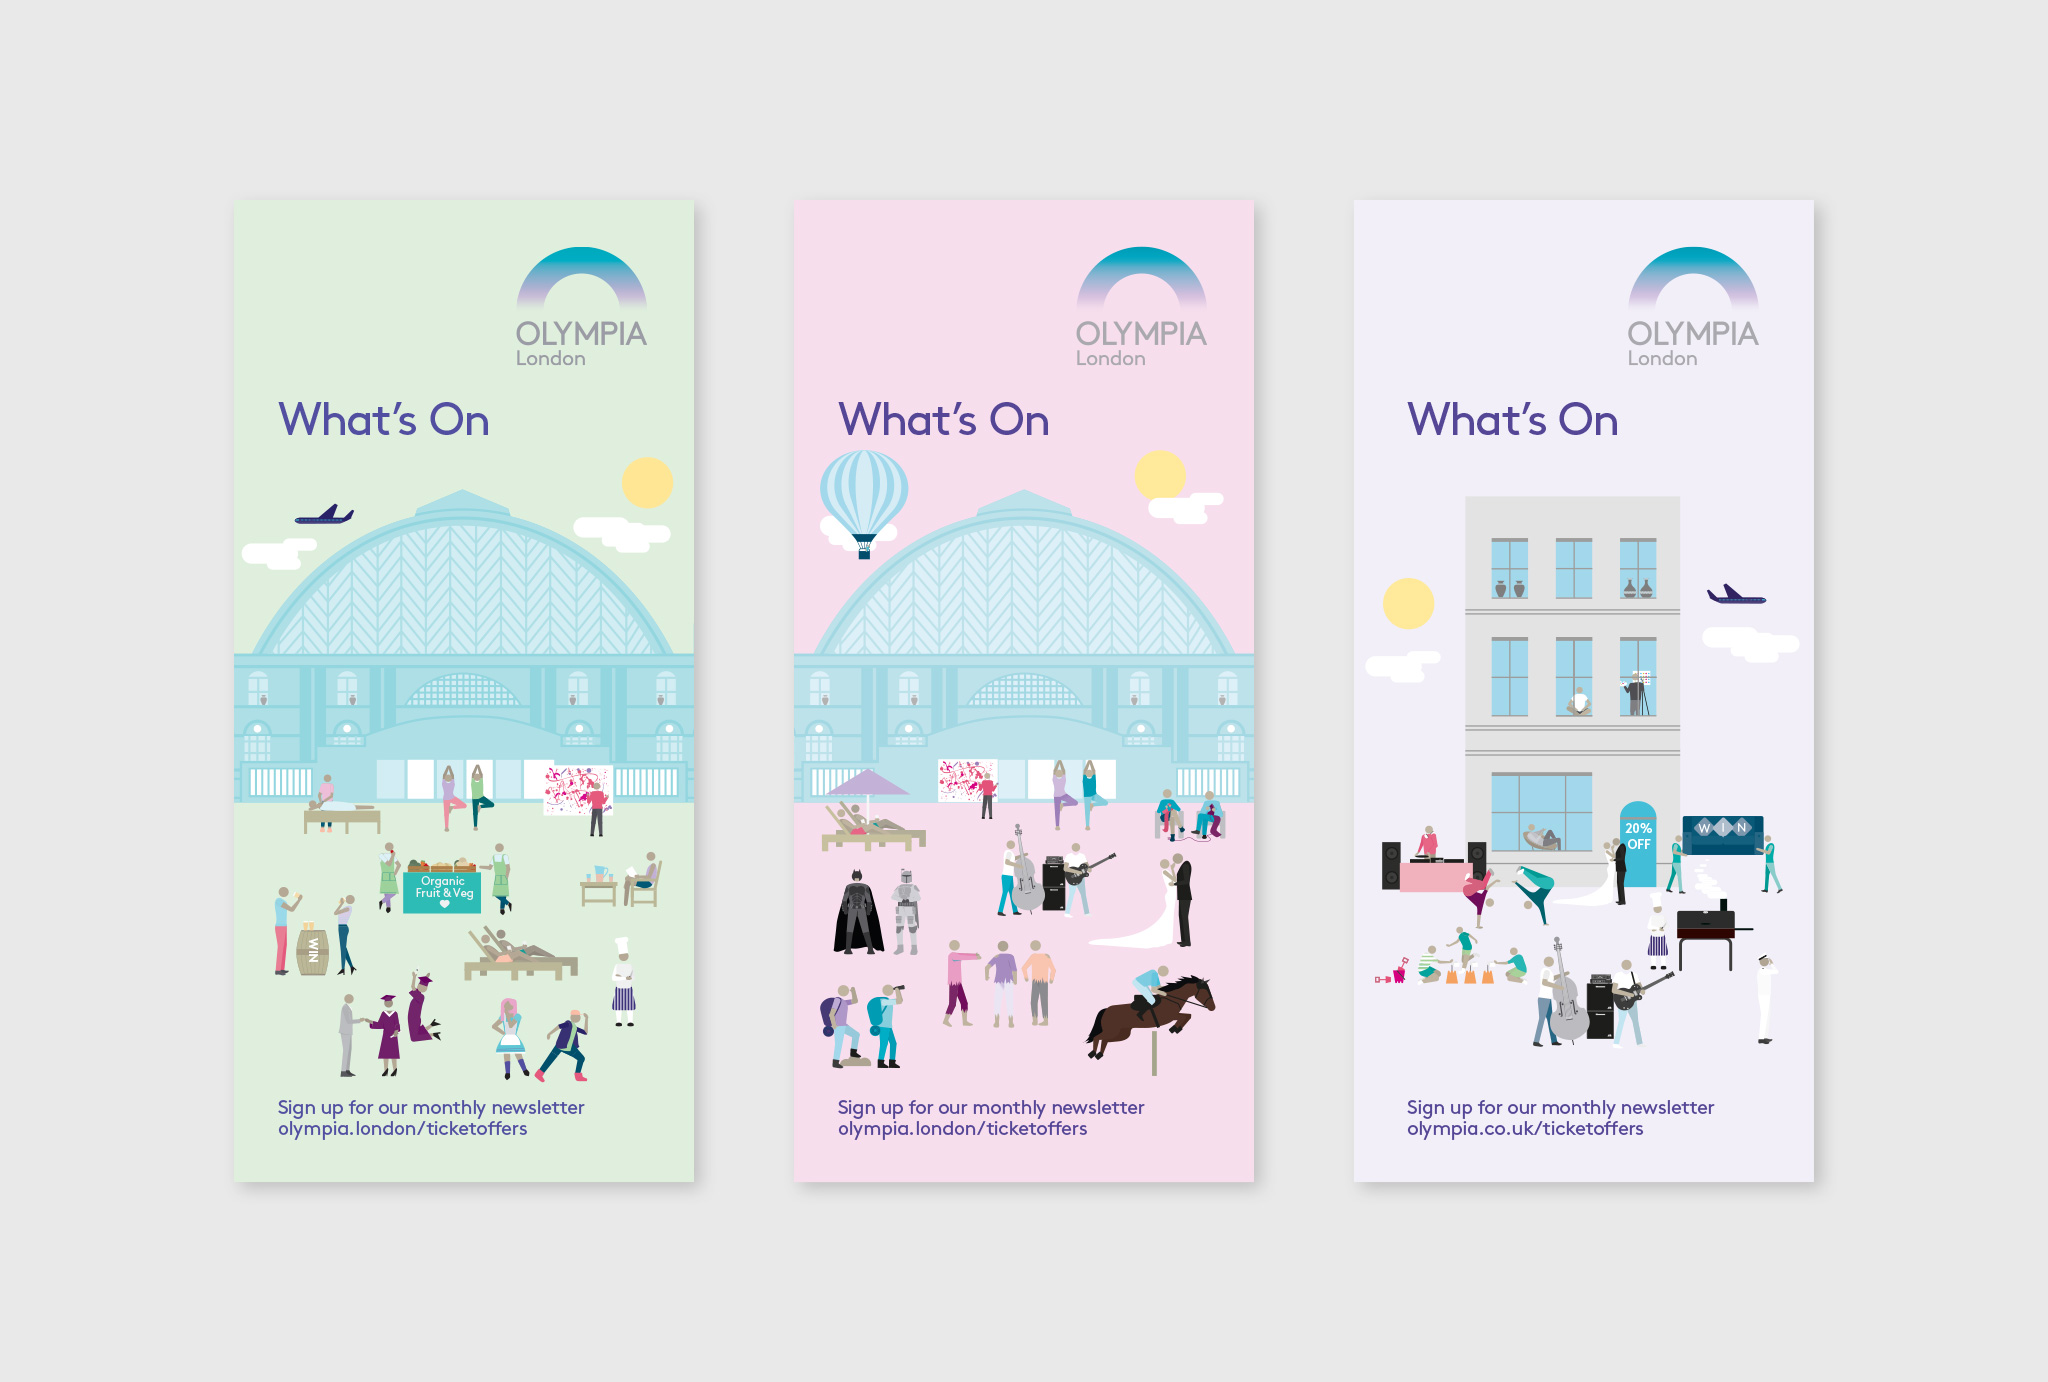 design for the little brochures for the Olympia London events